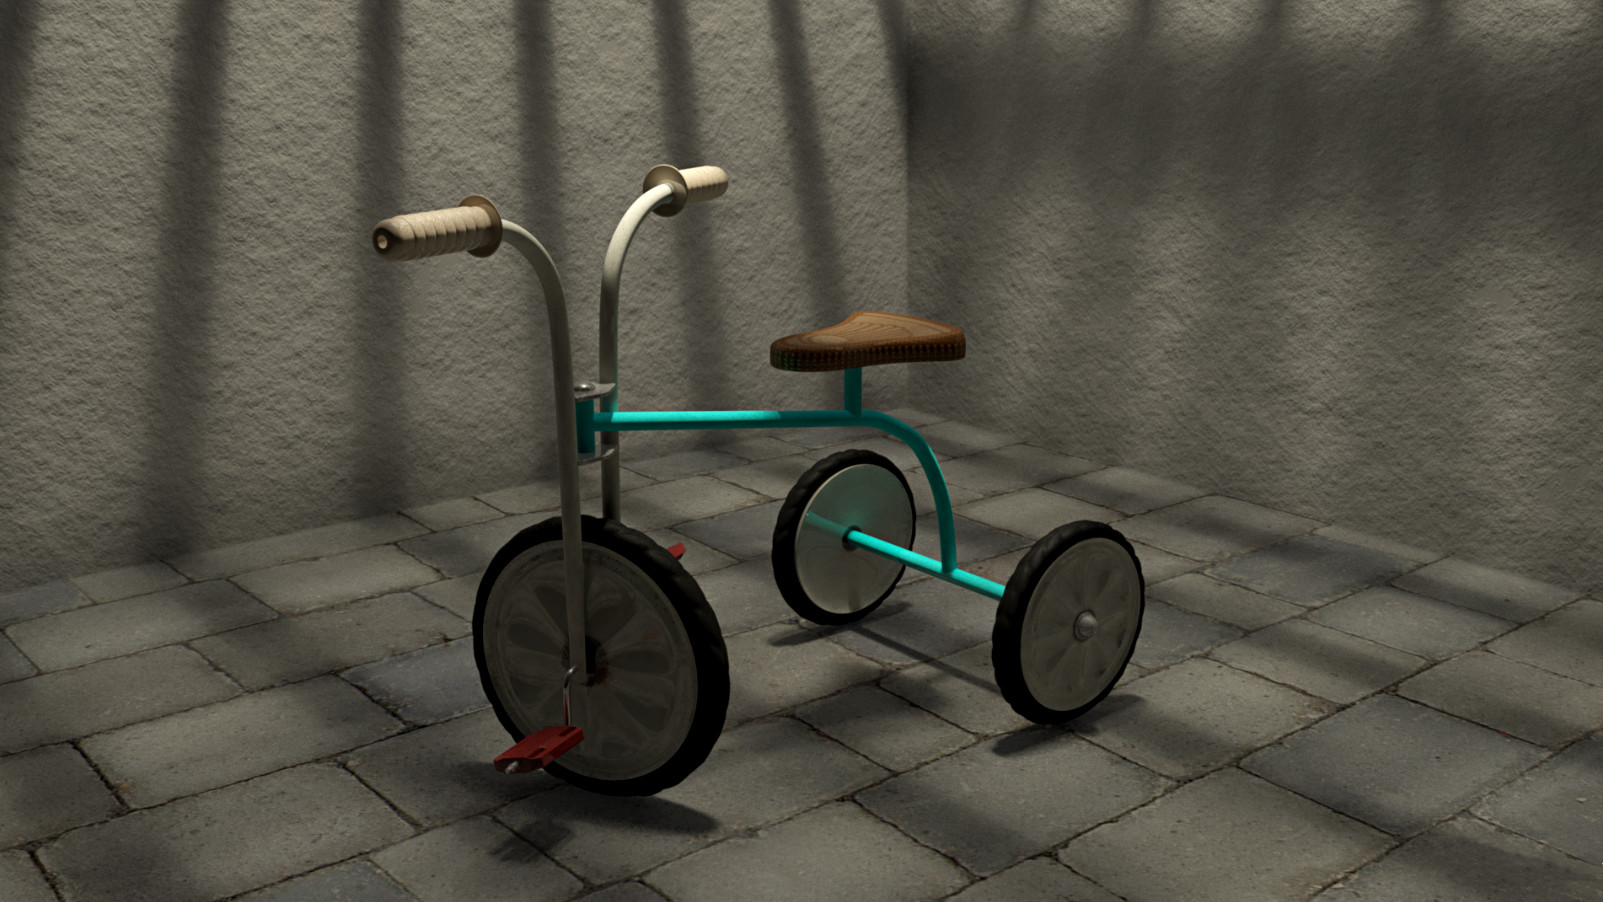 Rajesh sawant tricycle2